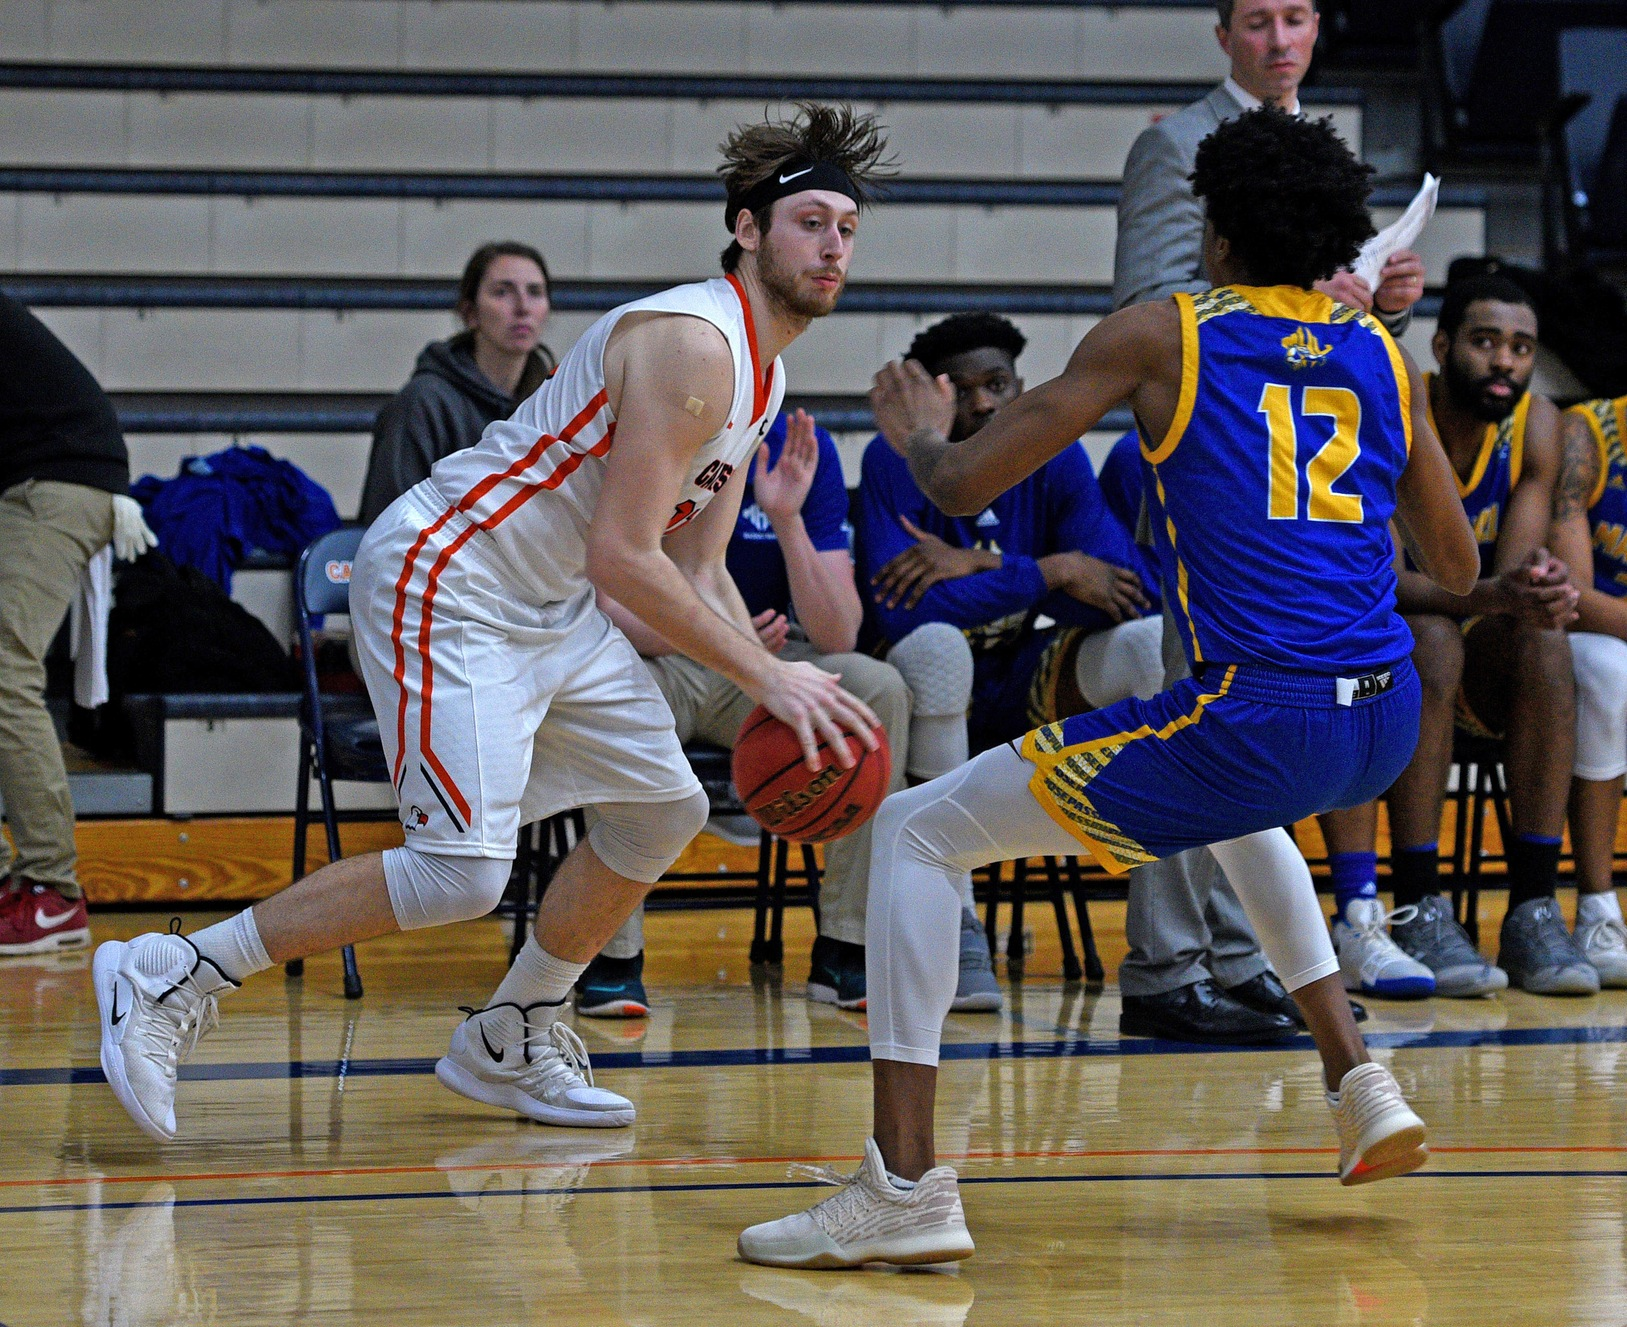 After 19 days, Carson-Newman finally downs Mars Hill 85-73